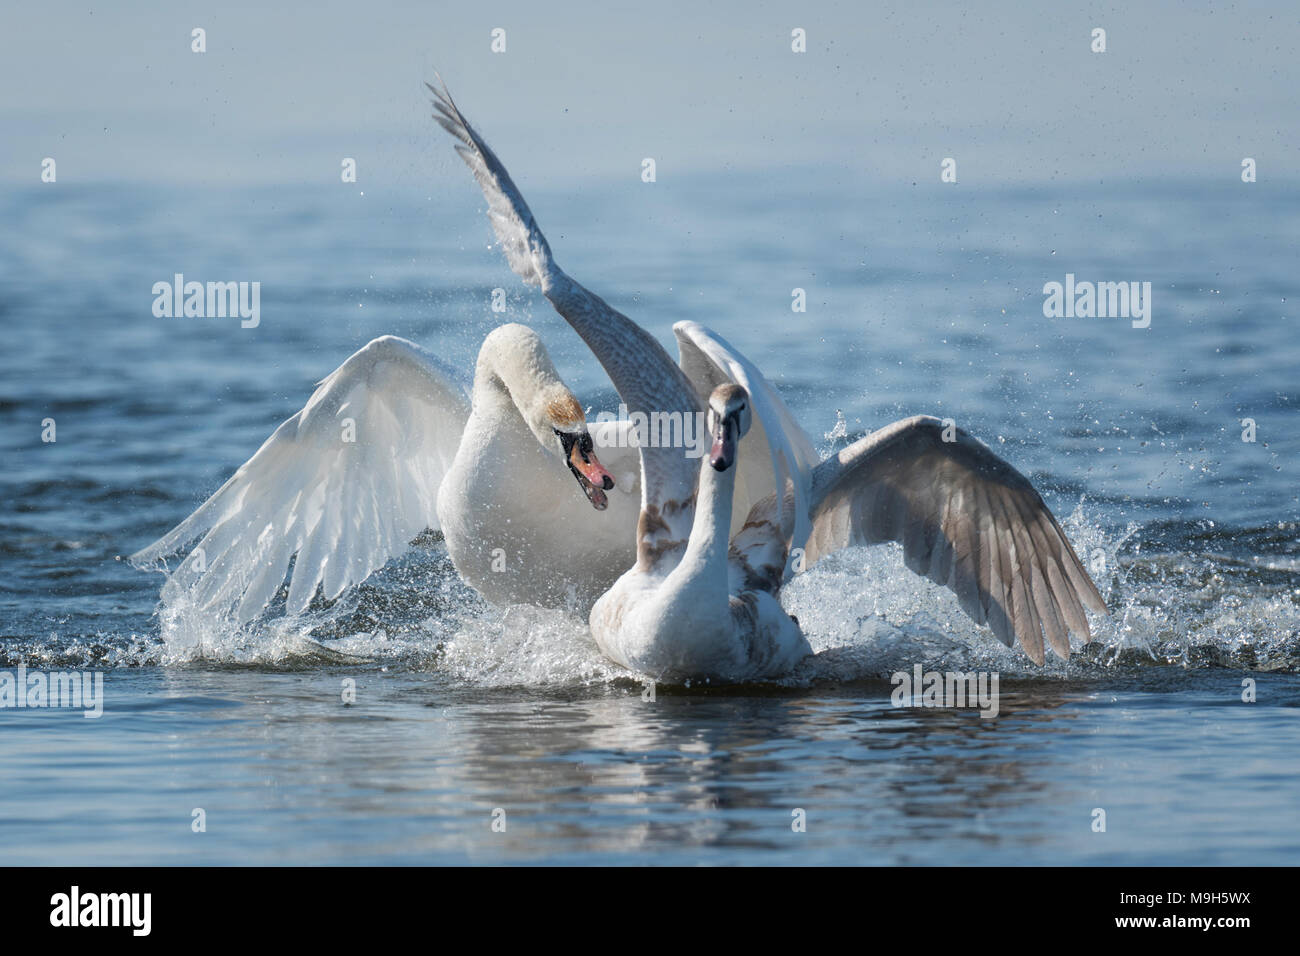 Two male swans, Cygnus olor, during a fight for supremacy in mating season on the River Stock Photo